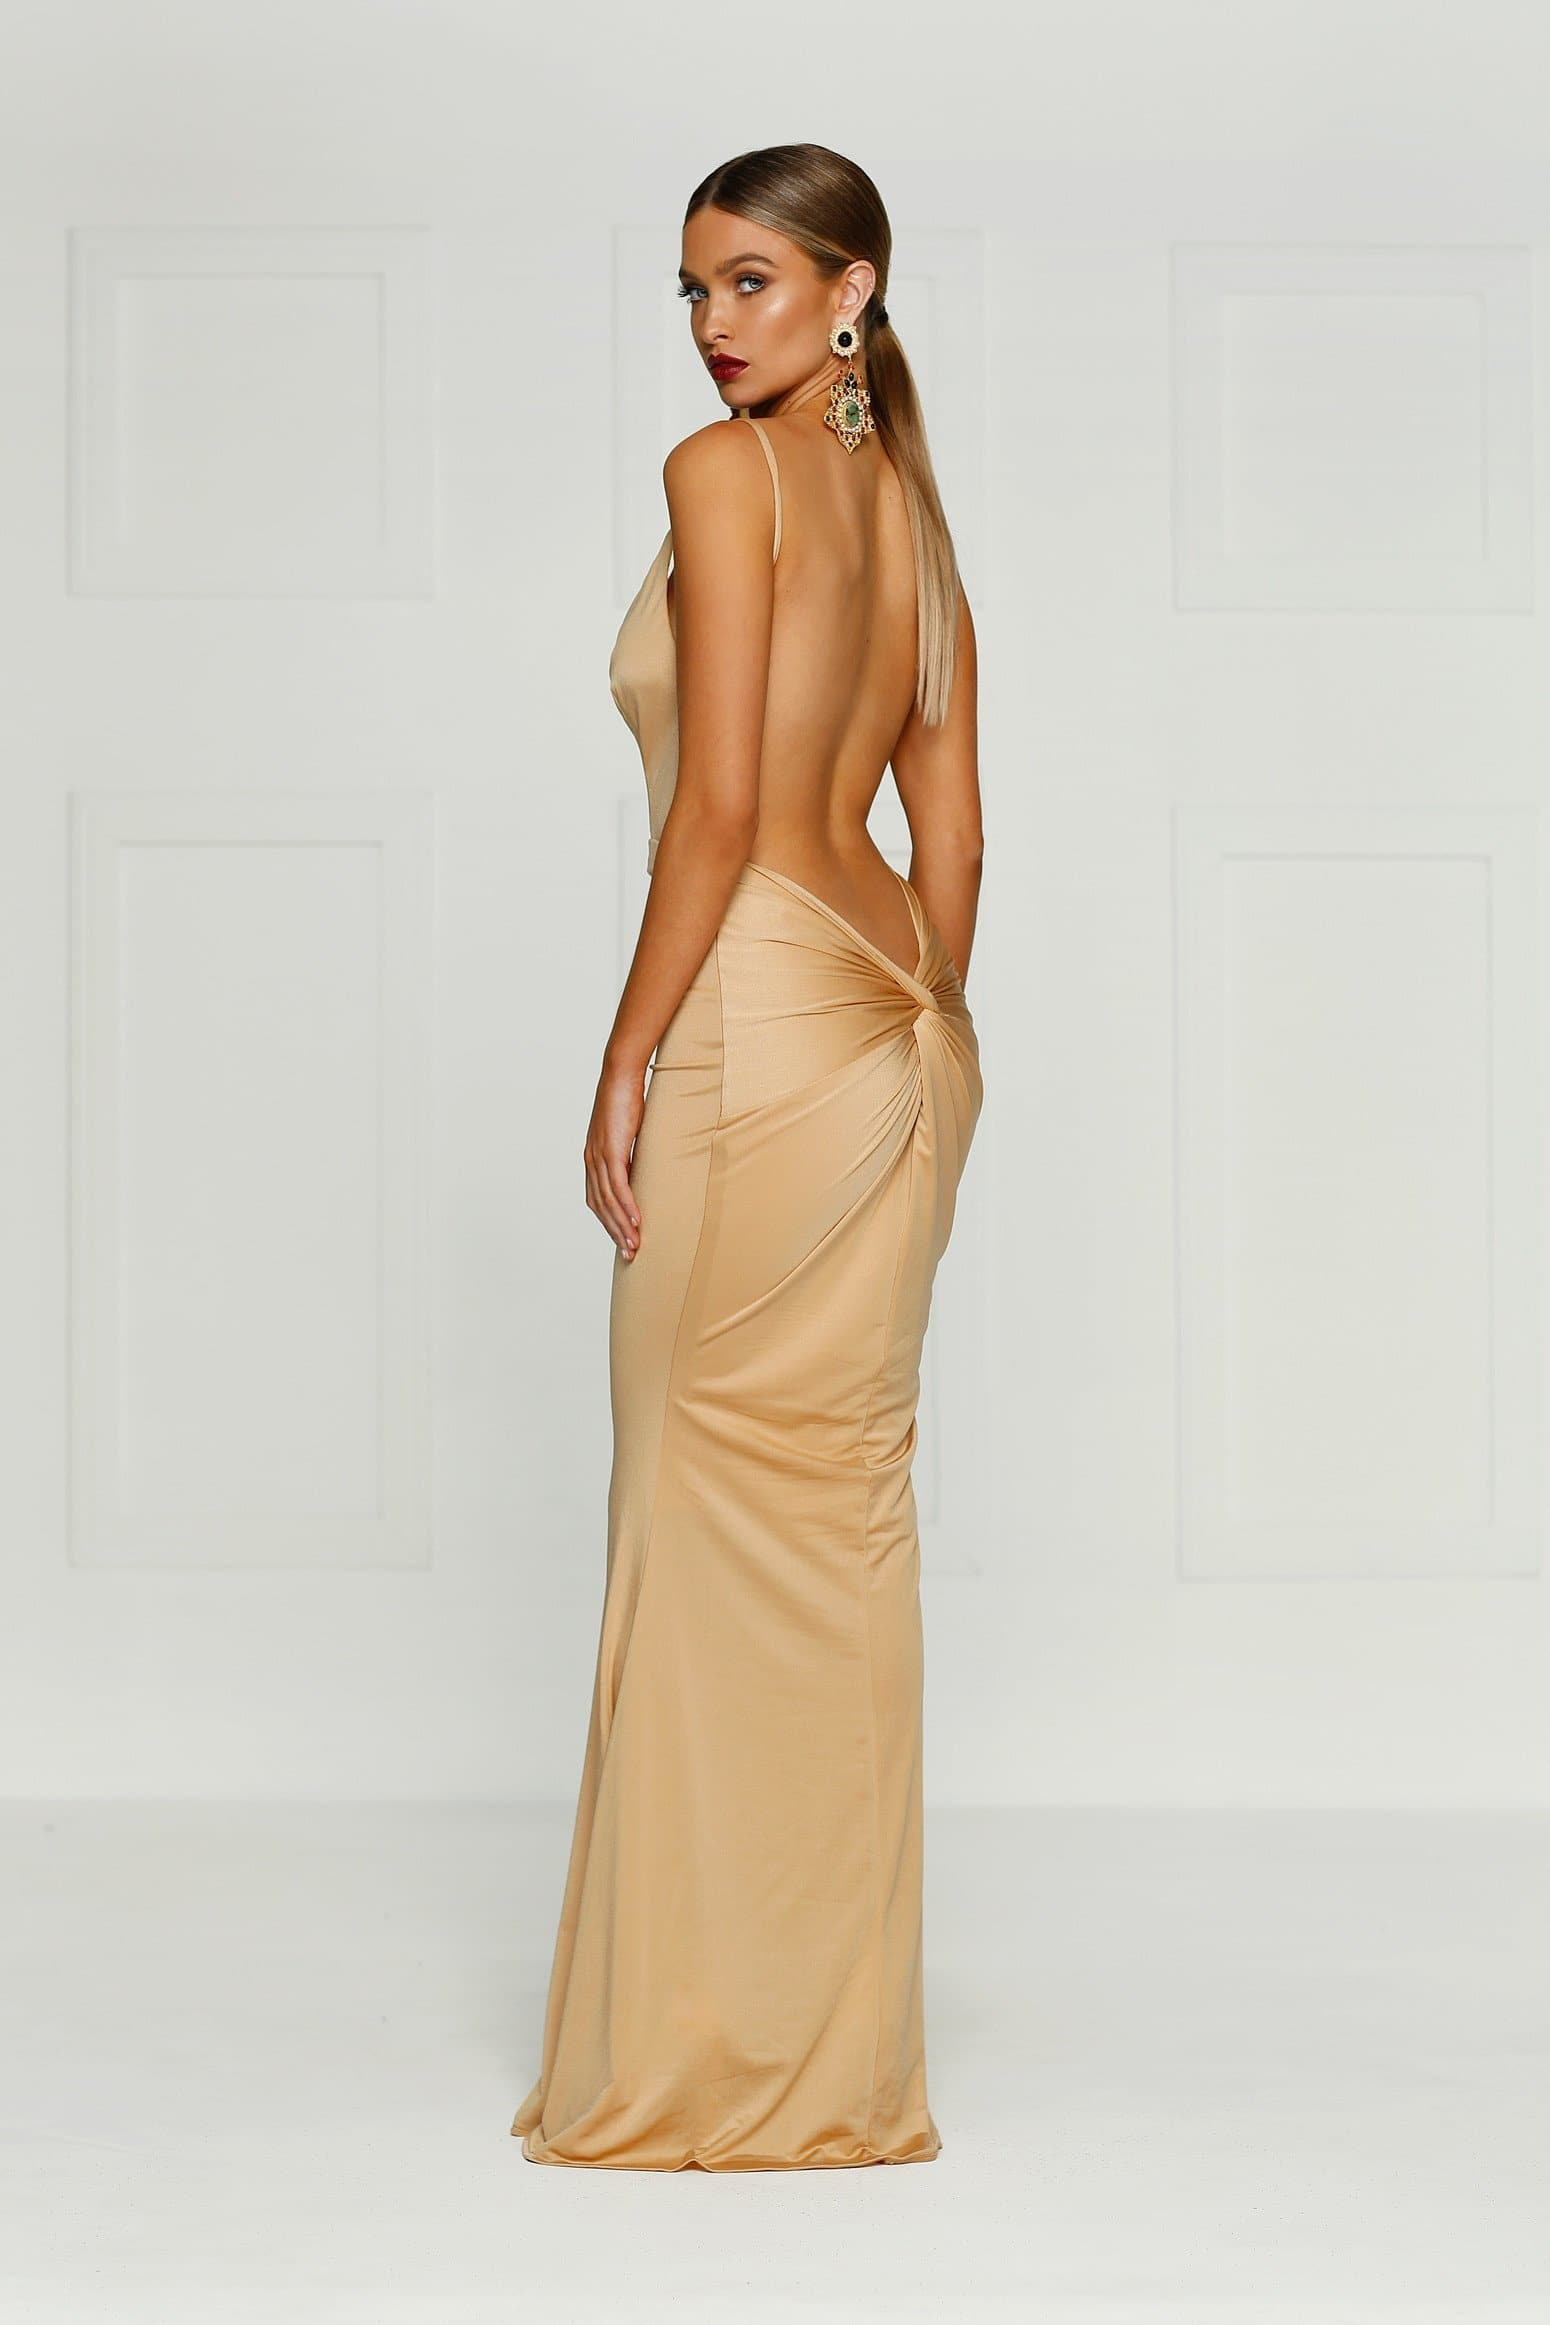 caramel backless dress with a plunging neckline in a stretch fabric. Fitted formal dress prom dress